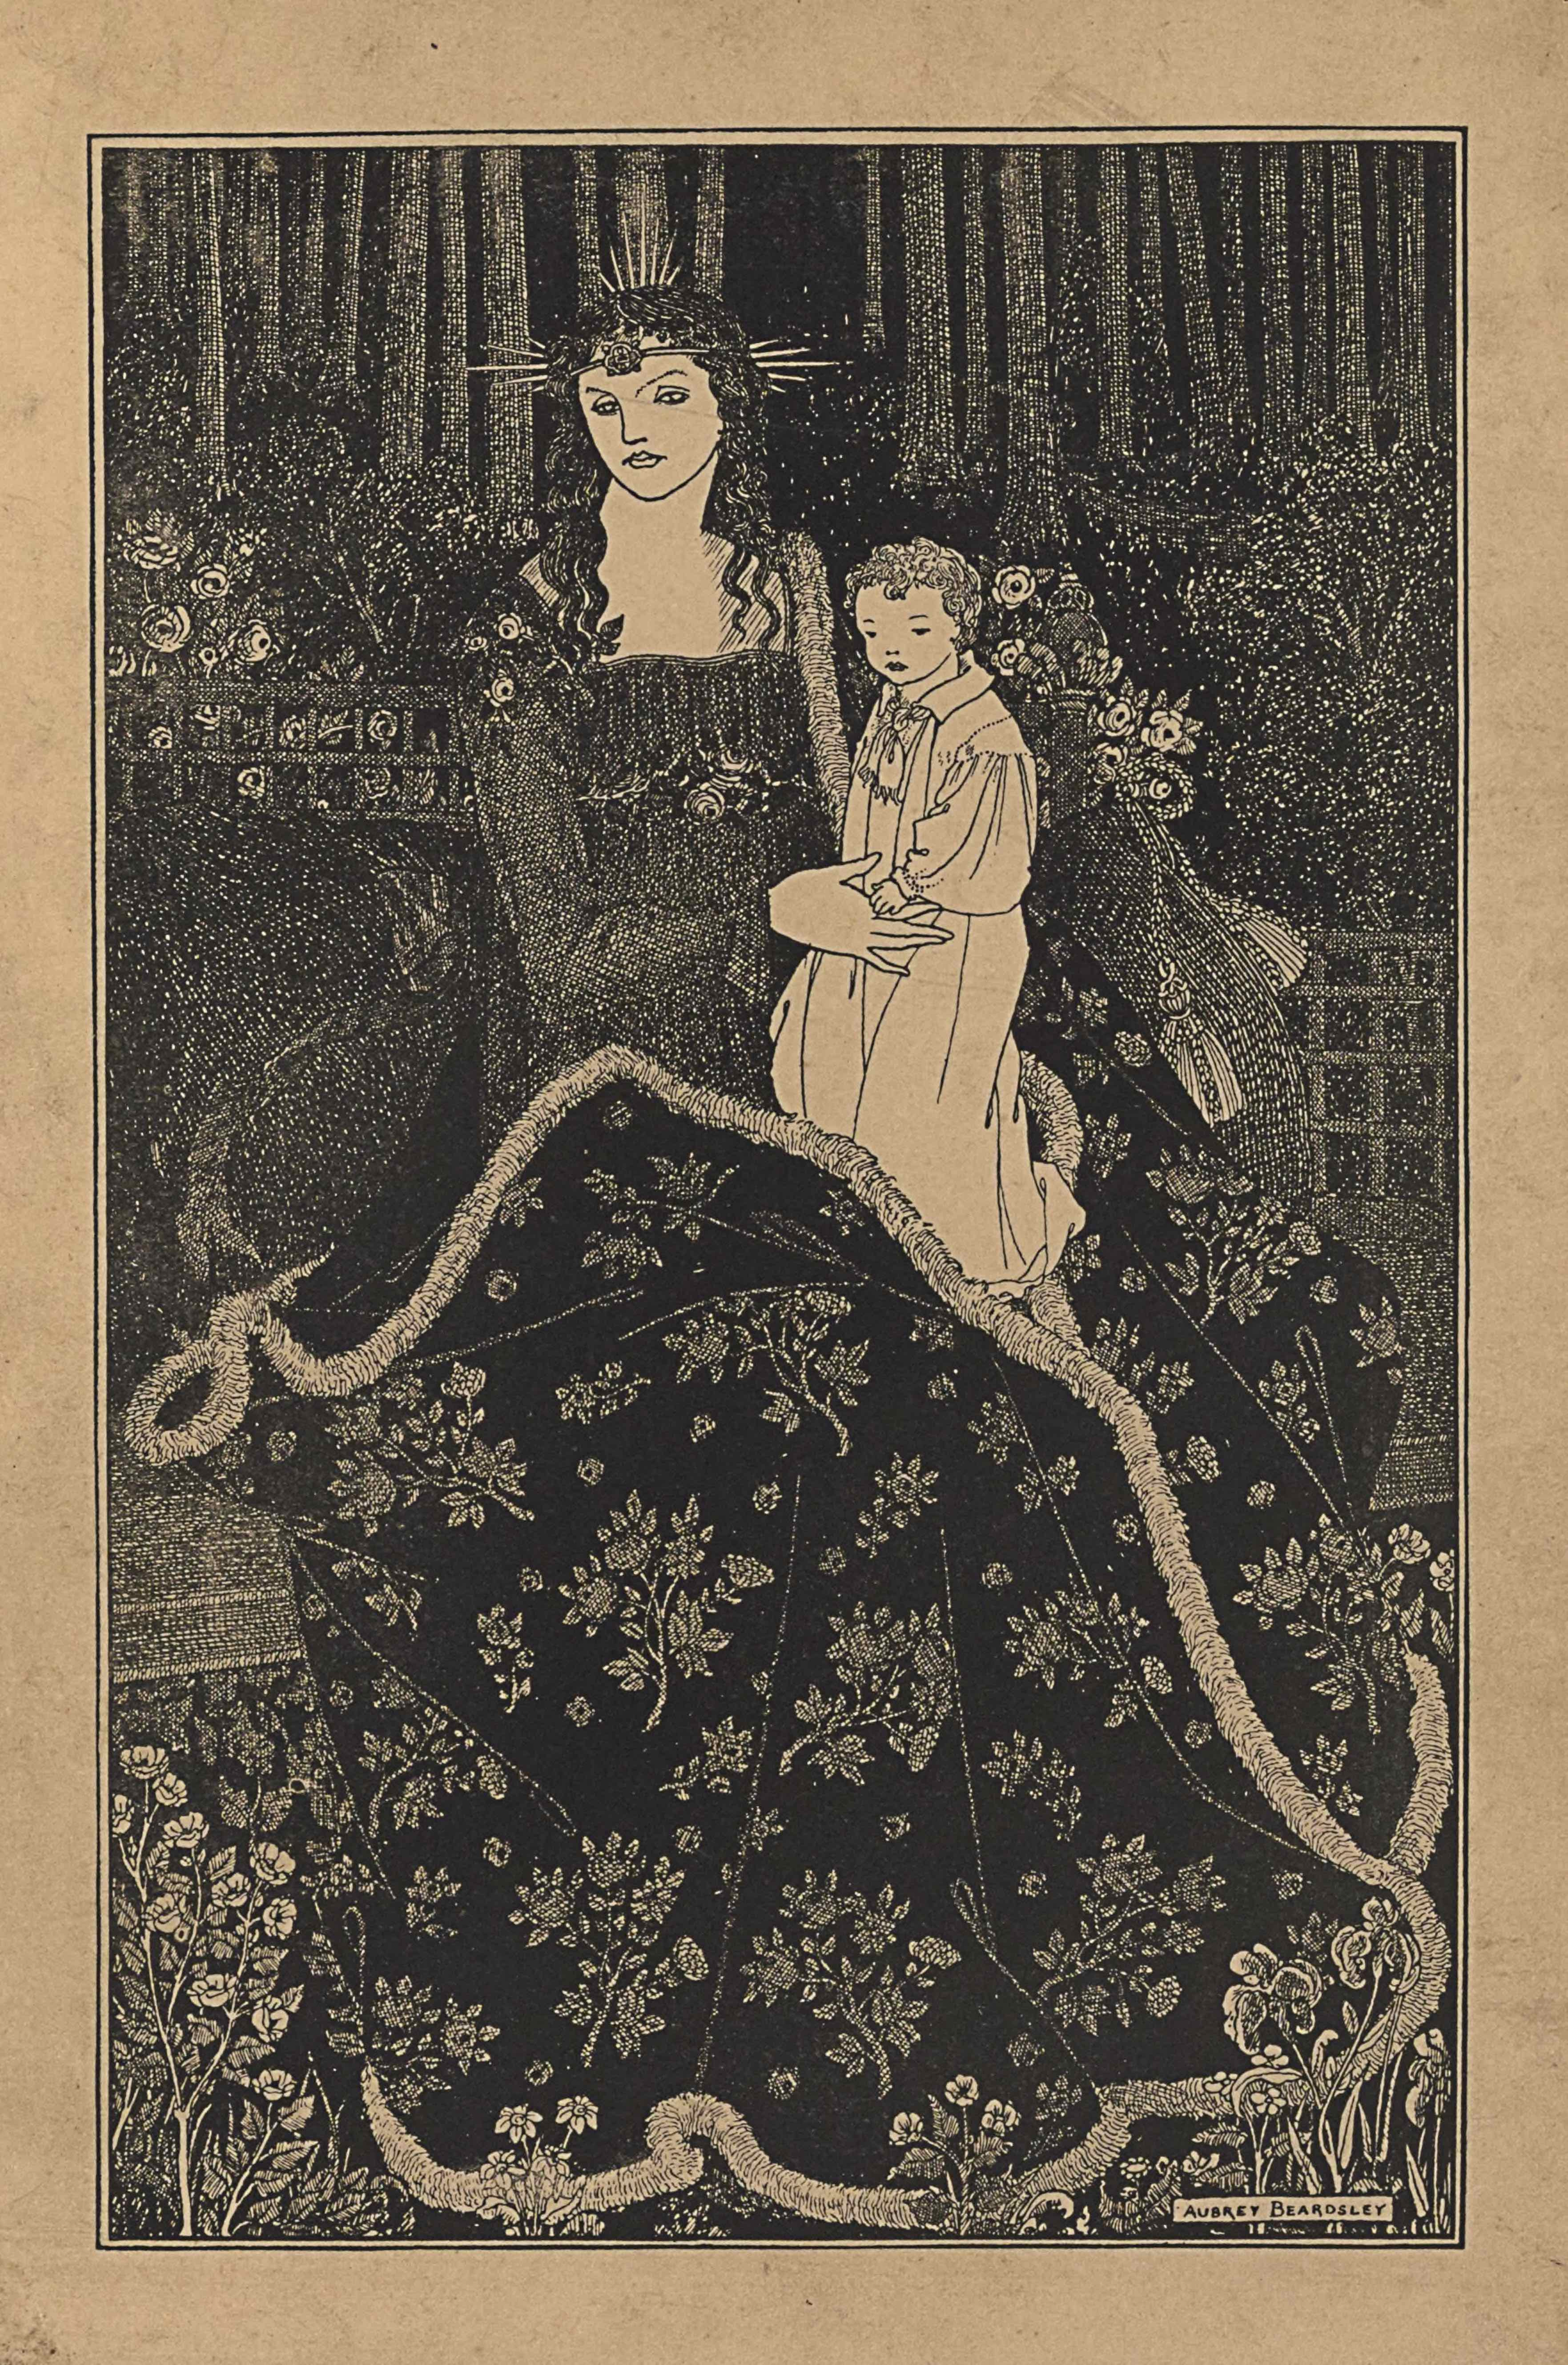 "This line-block reproduction of a pen-and-ink drawing is in portrait orientation. The image shows a frontally facing woman sitting on a bench, holding a young child on her lap in a garden before a forest. At the feet of the woman, and in the foreground, are small sproutings of flowers and plants. The bench is placed diagonally at the centre of the picture plane, going up towards the right, The seated woman is wearing a flowing gown with long sleeves and a square neckline. Around her skirt is a large floral patterned blanket or robe that is edged in fur. The woman has her arms bent up to hold the young child on her left knee. She is facing the viewer but turned slightly to the left of the page. She has on a crown with five points sticking up in ascending and then mirrored descending heights protruding from the back of her head. The same set of five points stick out horizontally from both sides of her head as well. Her hair falls past her shoulders in dark waves. On her forehead a band wraps horizontally around with a small ornamented disk at the front and centre. The young child on her lap is wearing a light coloured and collared robe with a small necktie loosely tied. The child faces to the left of the page and shows about a three-quarters profile. The child has short curly hair. Behind the child and to the right is a sack that is tied off with a tassel rope. To the right of the sack in the background is a piece of lattice. To the left of the child and woman is another piece of the lattice further back in the forest than the other. In front of the lattice on the left is a dark area with a bush of roses blooming. Trees fill the background across the top third of the page and only their trunks are visible within the frame. There is black darkness between the trunks in the background. The name ""AUBREY BEARDSLEY"" [caps] appears in the bottom right corner, framed within a single-lined border."